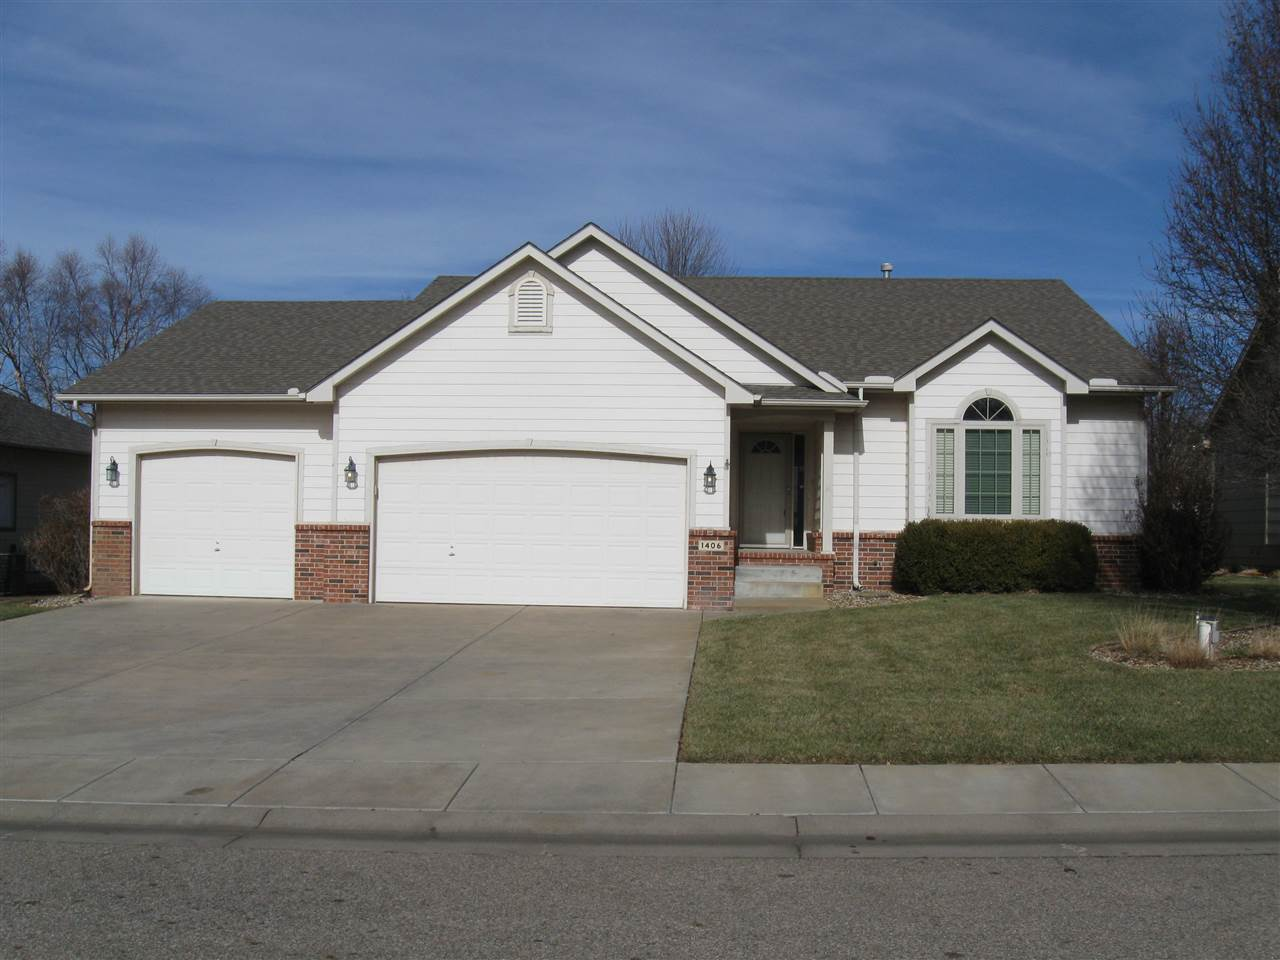 This beautiful ranch home has an open floor plan and is in a nice, well established neighborhood on